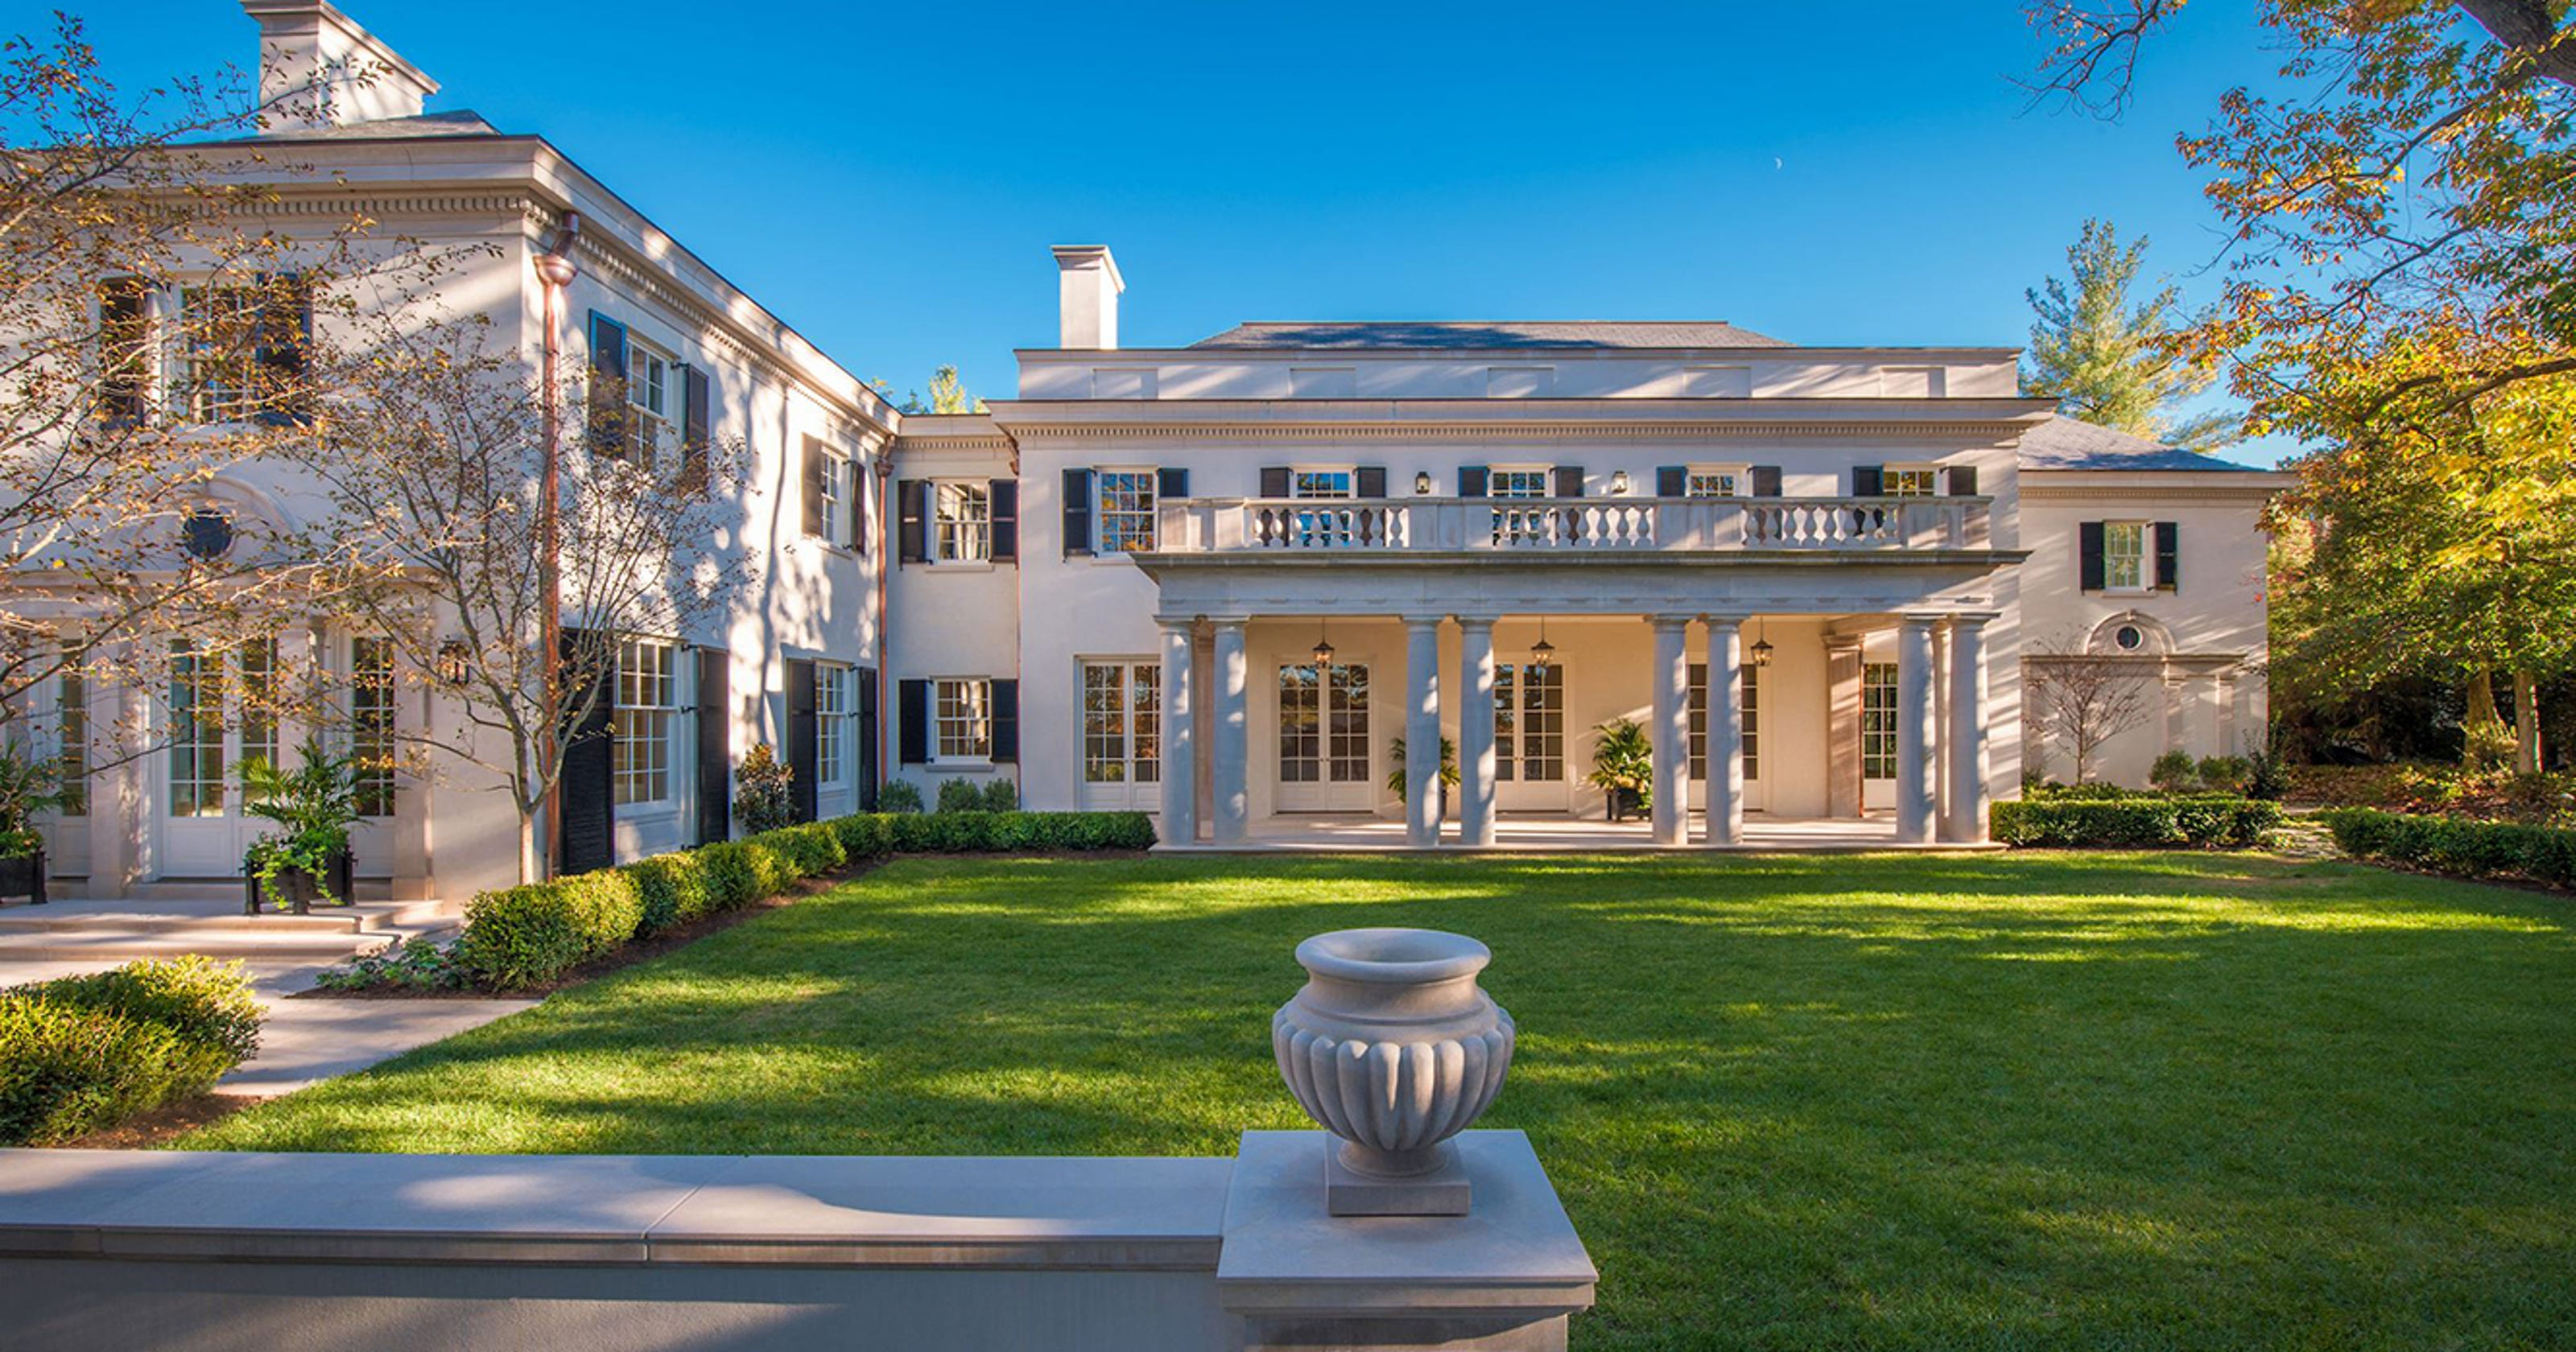 Most Expensive Home For Sale In Washington Dc Features 216 Tons